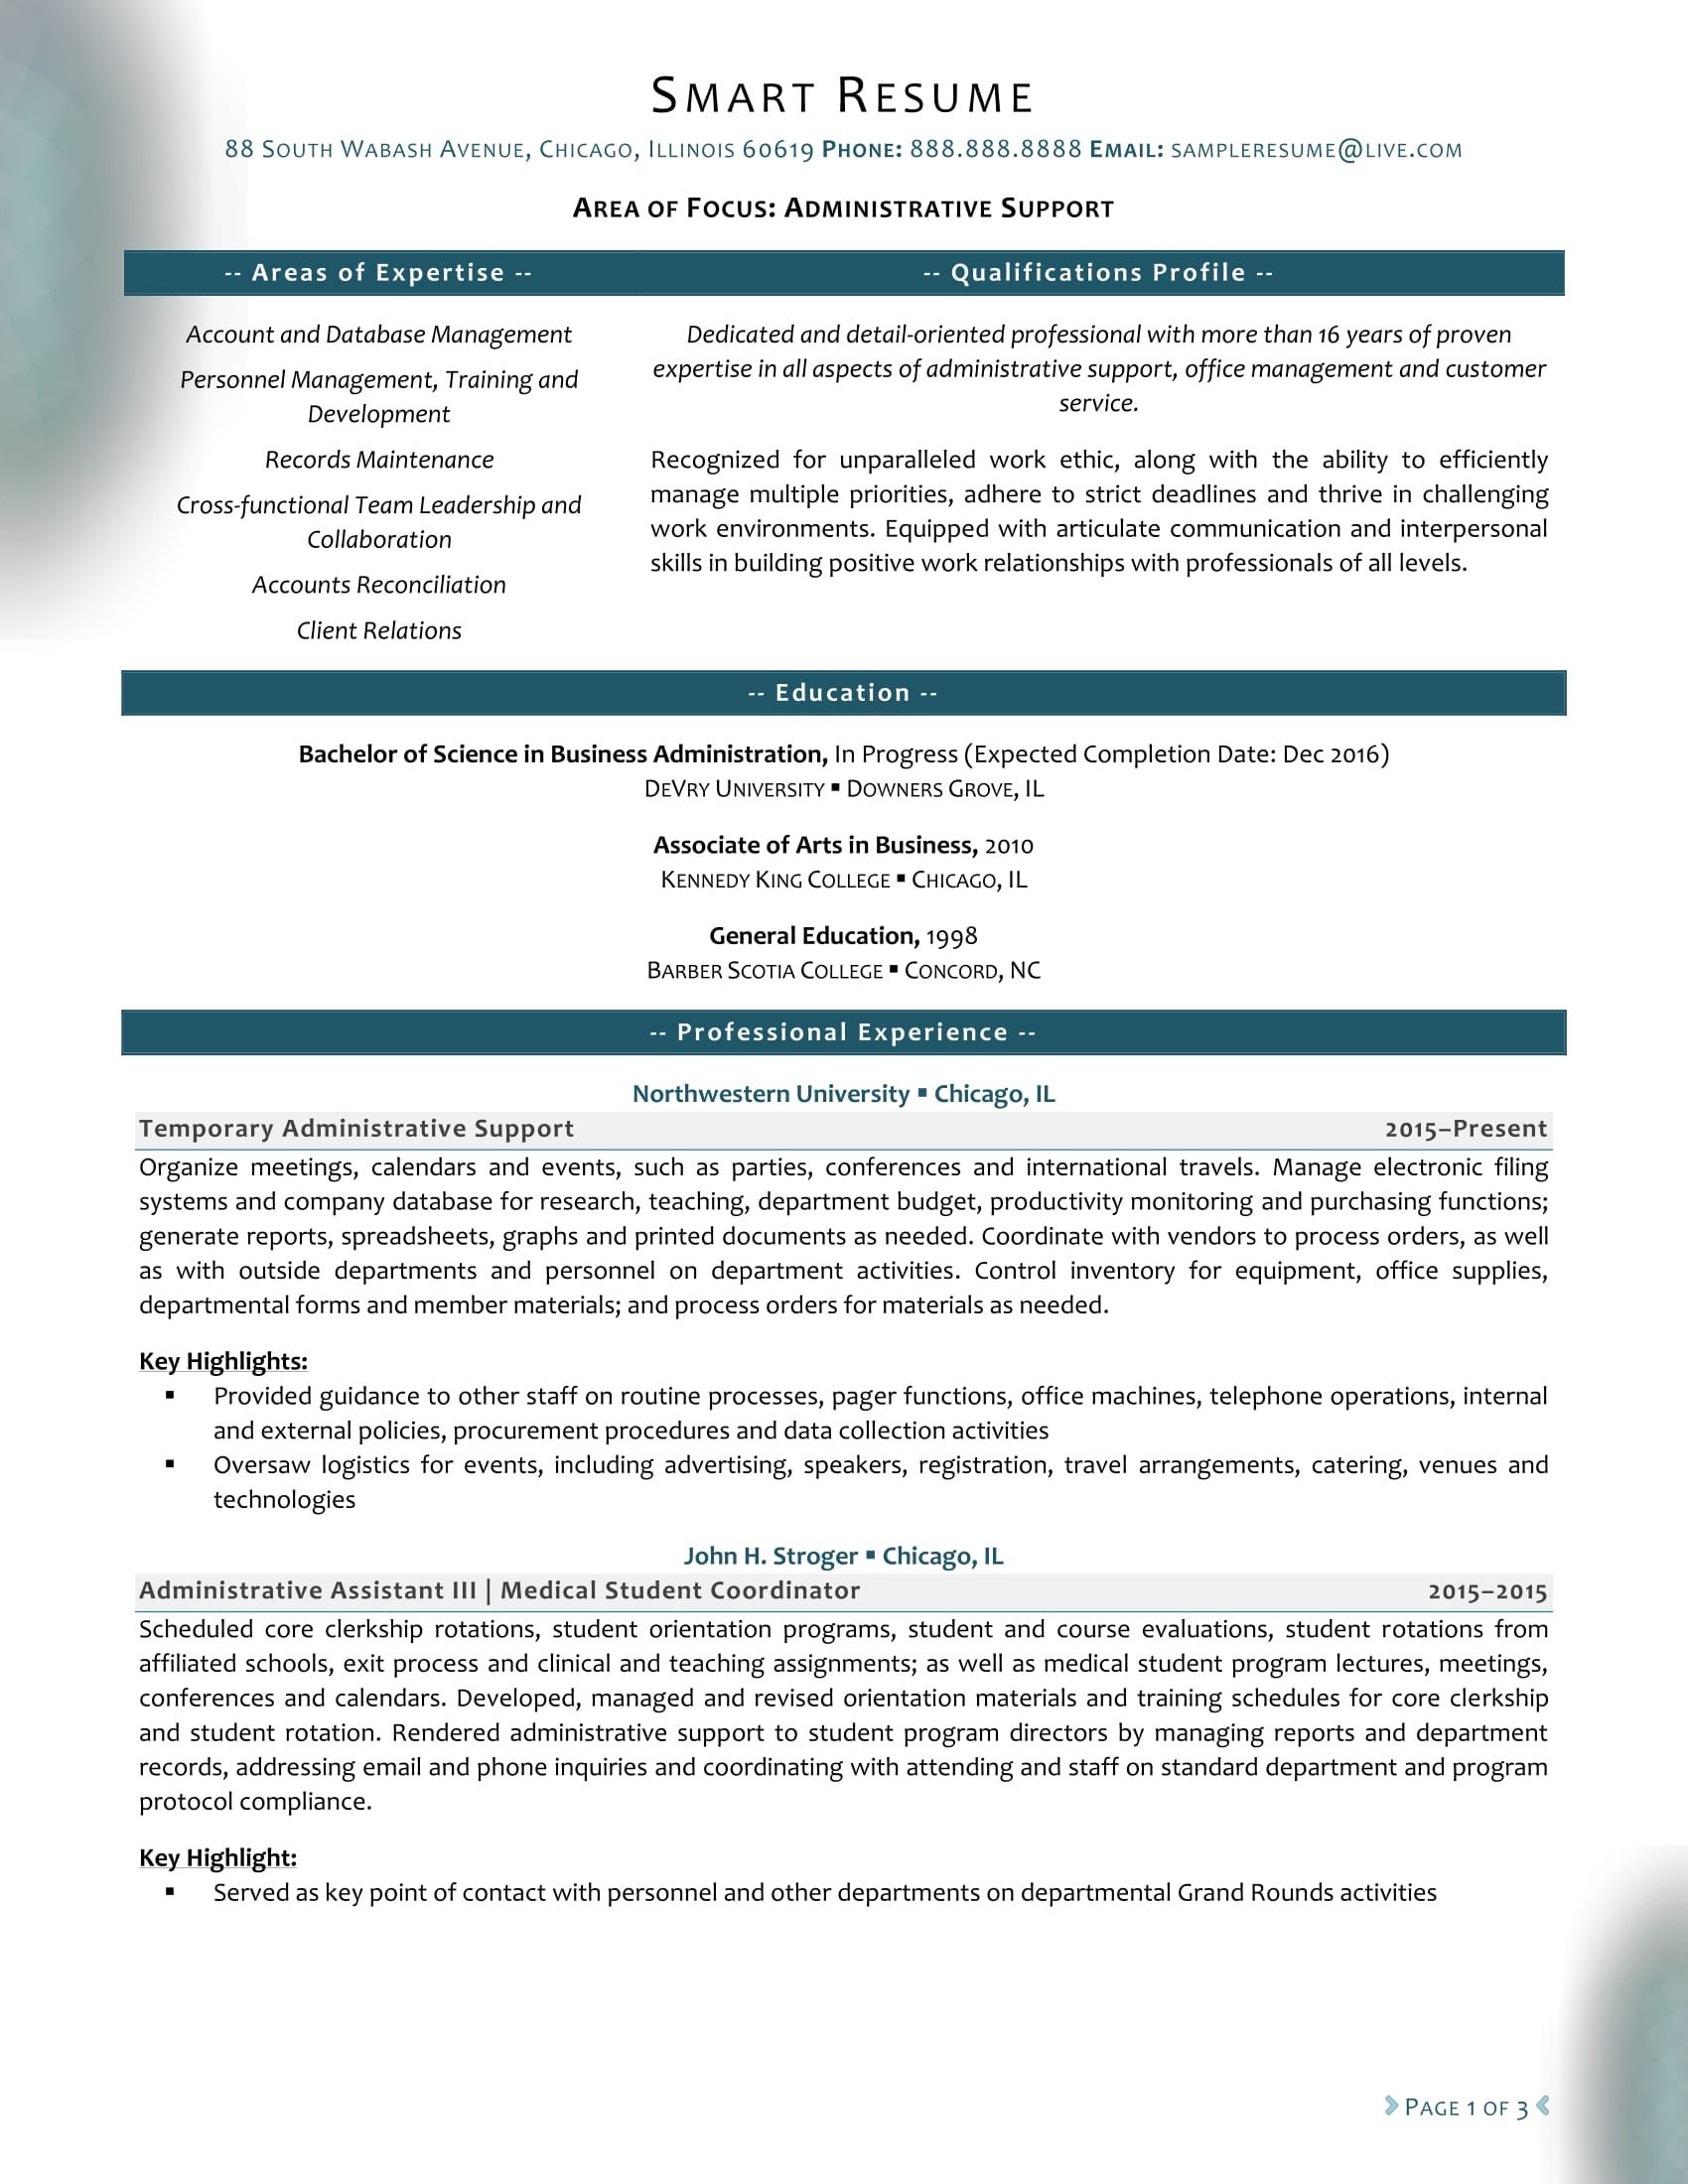 Administrative Support Resume Sample